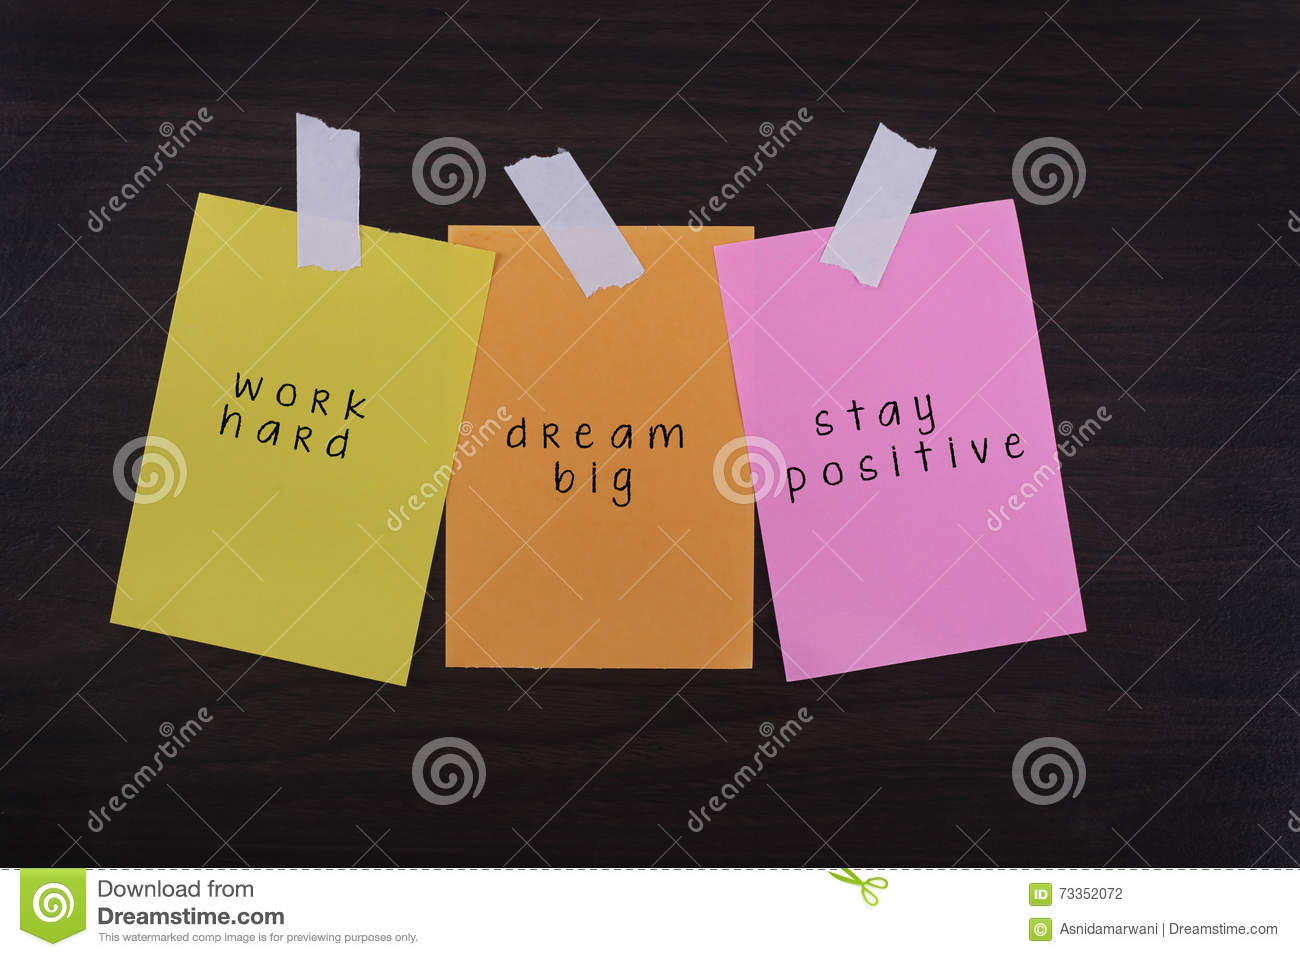 Word Quotes Of Work Hard Dream Big Stay Positive On Sticky Col